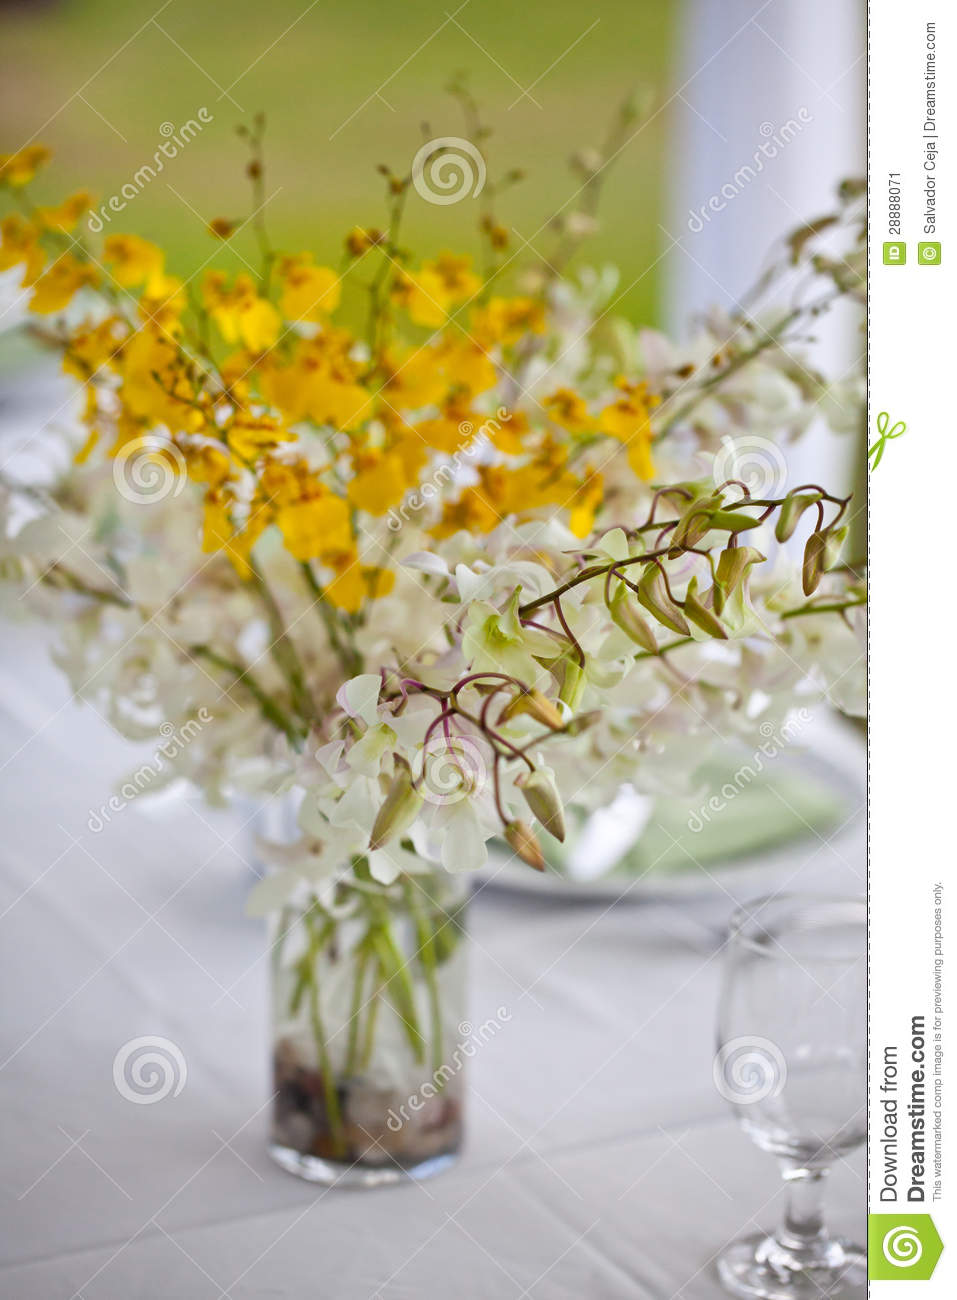 Beach Wedding Decor Table Setting And Flowers Stock Image